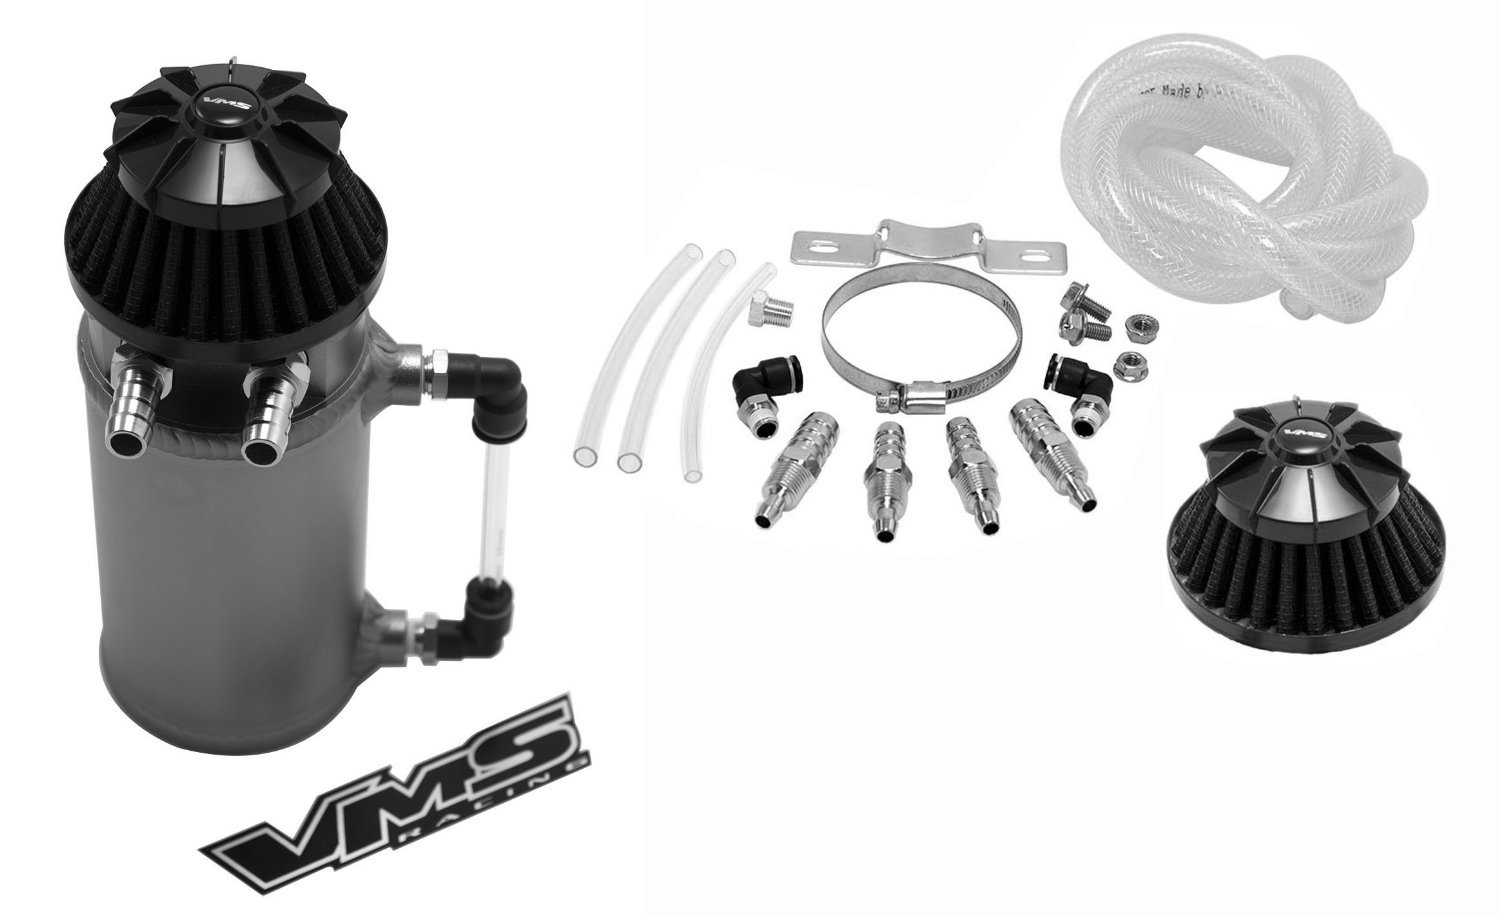 VMS Racing Universal Matte GUNMETAL Aluminum OIL Reservoir CATCH CAN Canister Tank with Breather (Complete Kit) 100-VMSCOCCTGM2